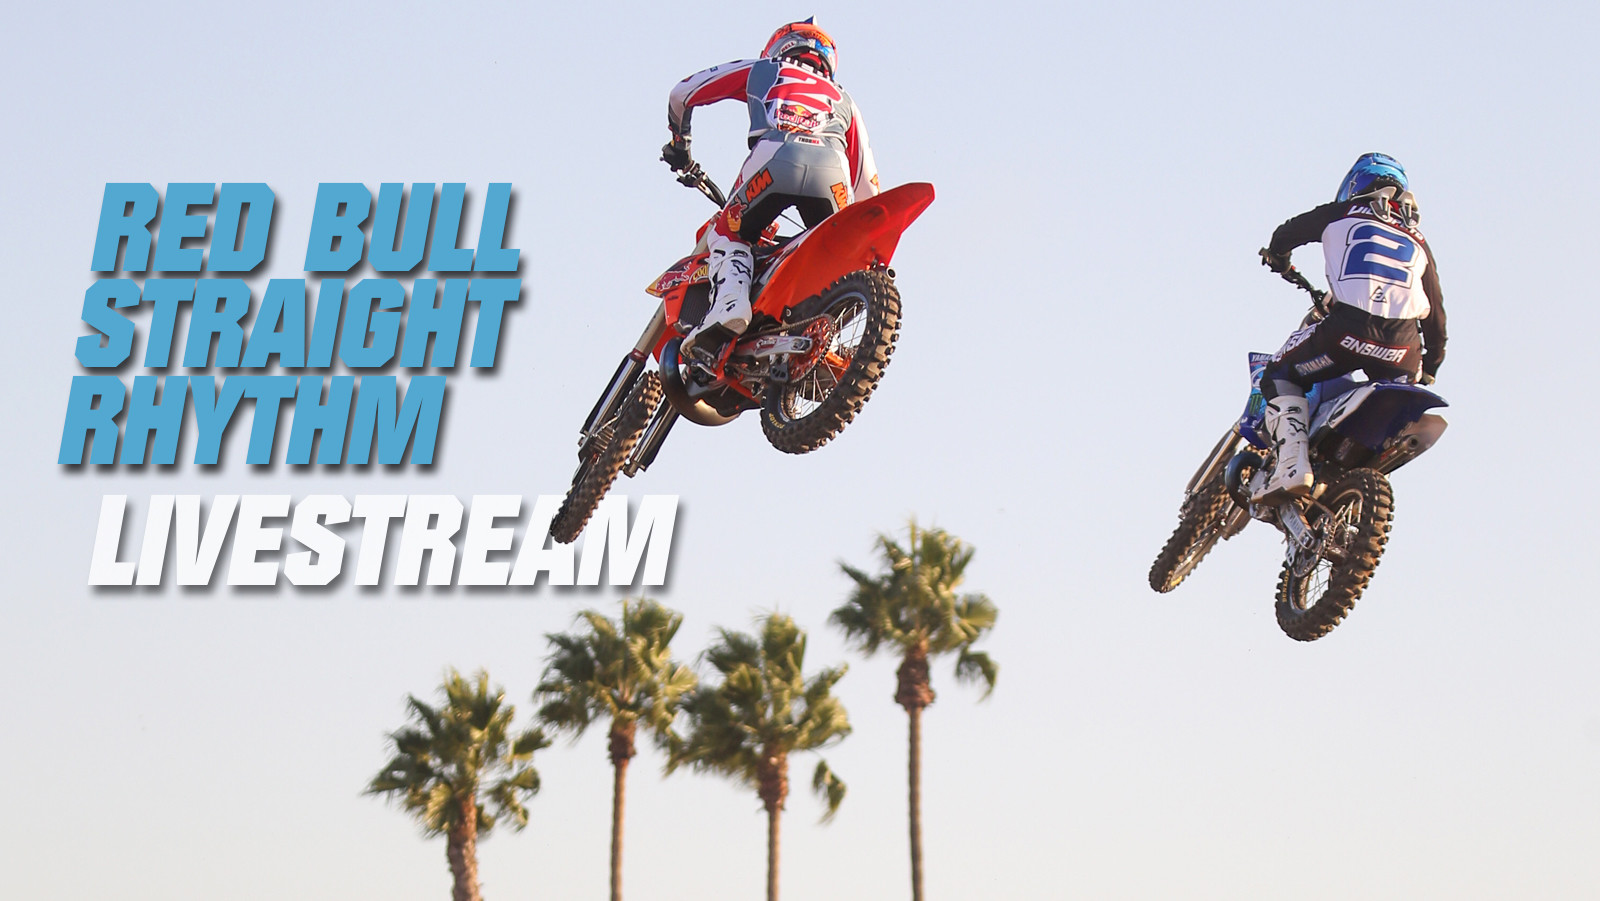 2019 Red Bull Straight Rhythm Livestream